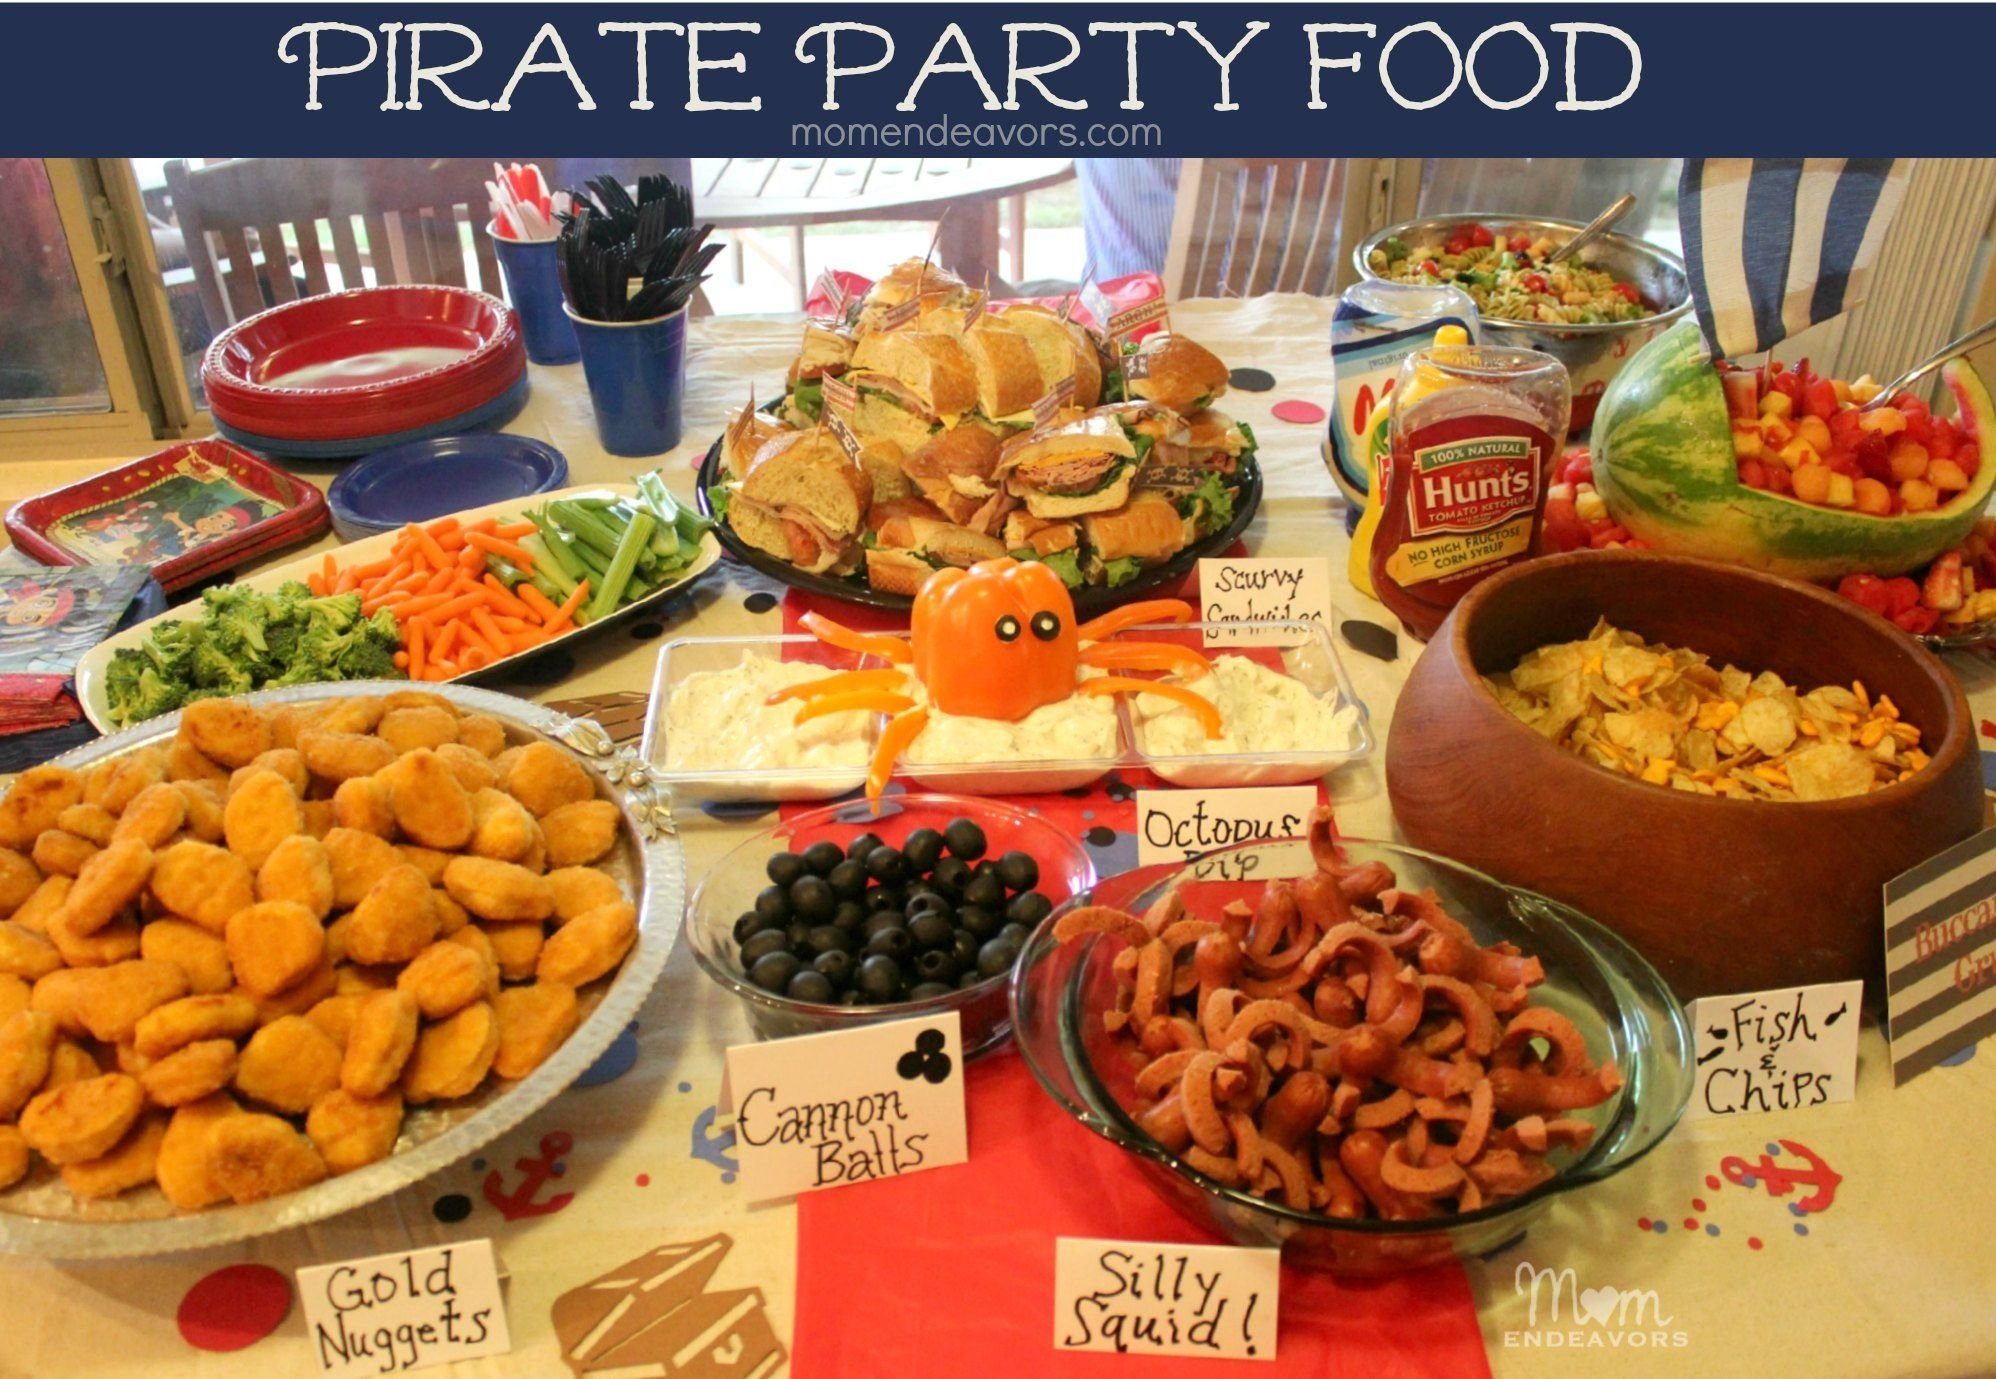 10 Elegant Party Food Ideas For Adults jake and the never land pirates birthday party food pirate 1 2020